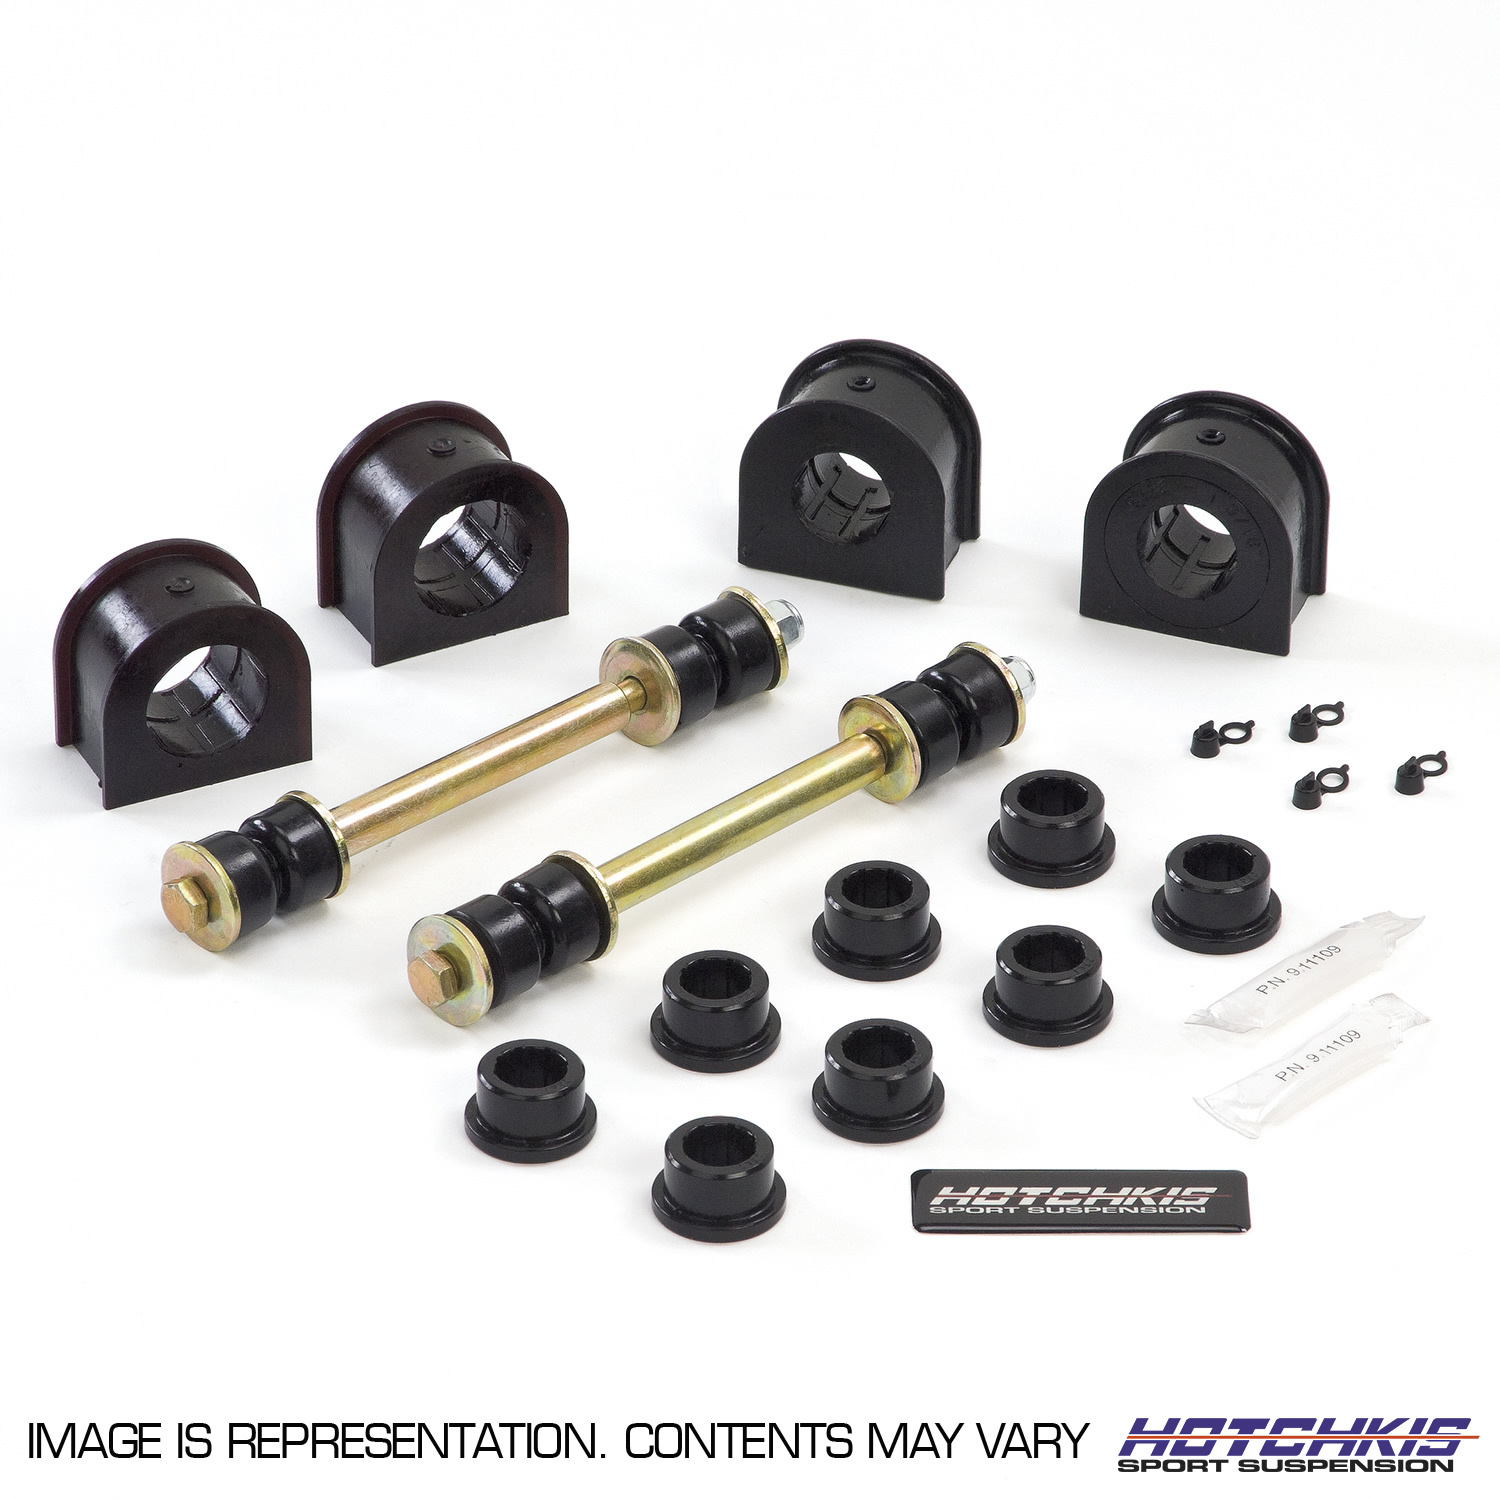 01-06 BMW M3 Rear Sport Sway Bar Set Rebuild Kit by Hotchkis Sport Suspension